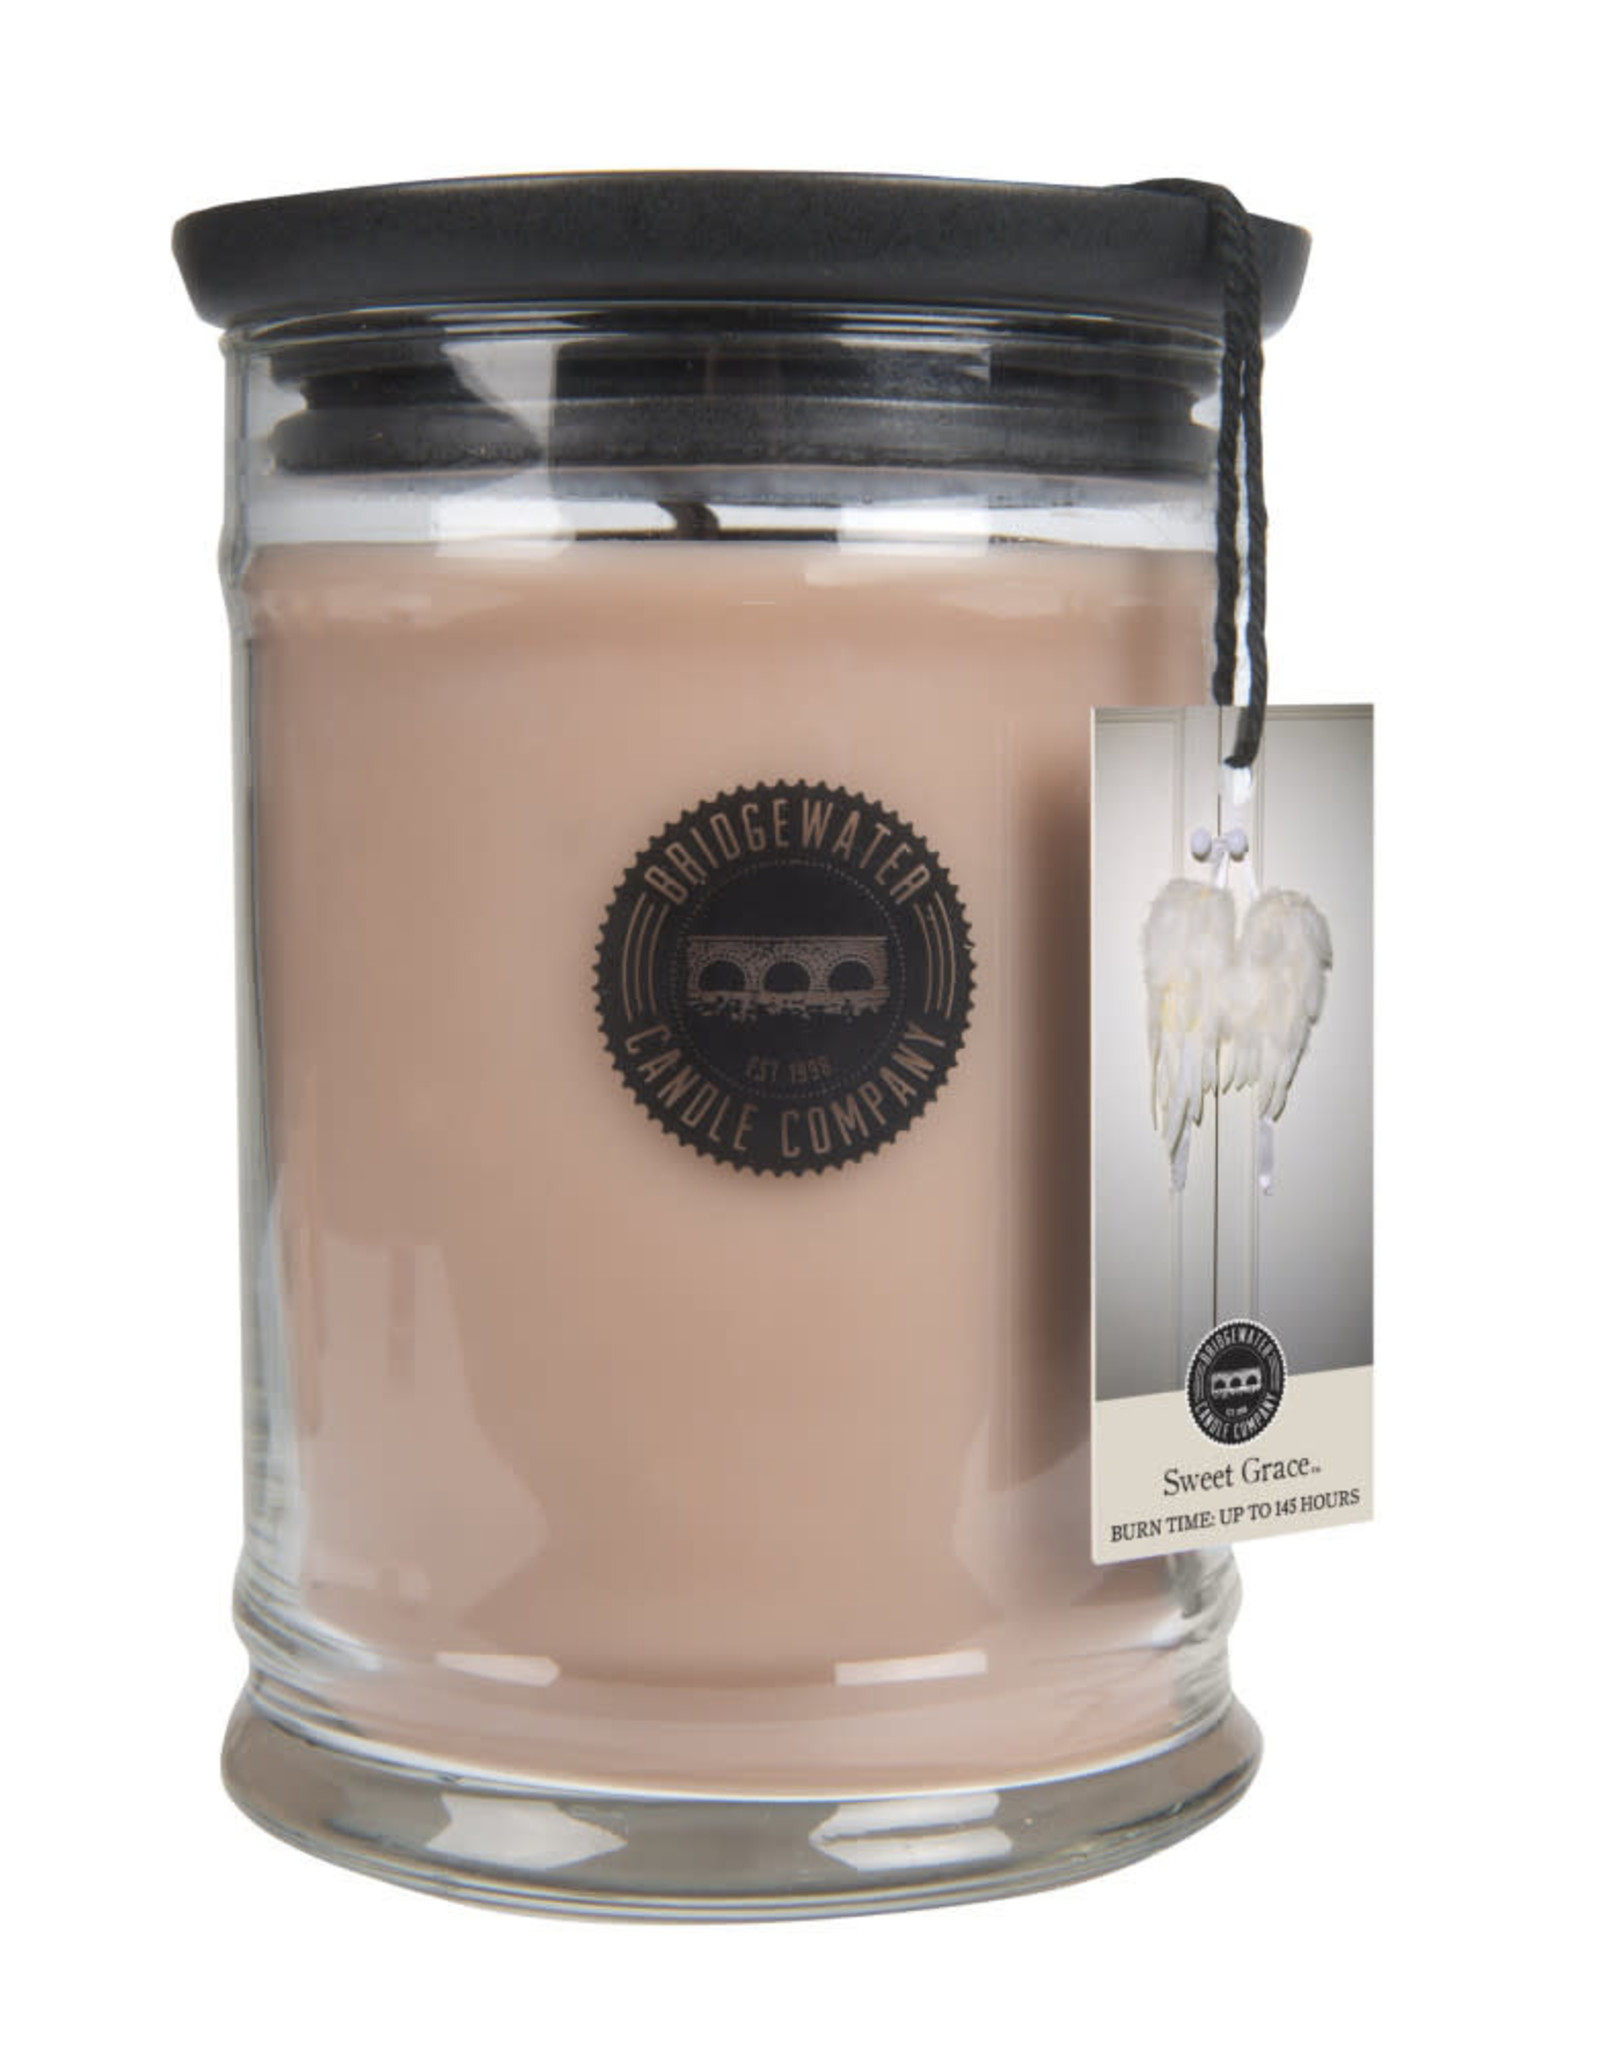 Bridgewater Candles Sweet Grace Candle